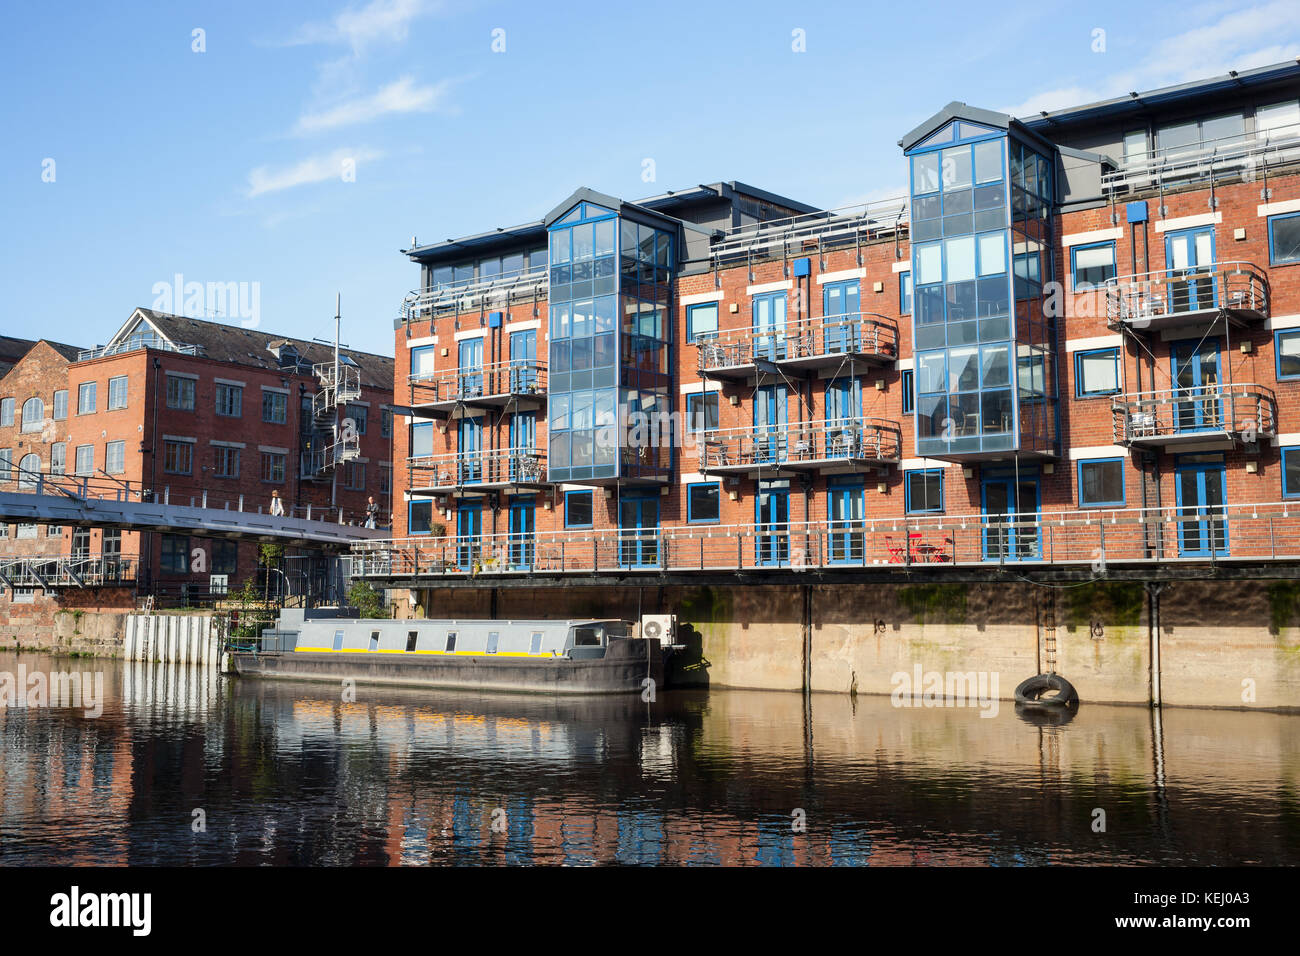 A view of the waterfront along the Leeds-Liverpool Canal in Leeds, England. - Stock Image